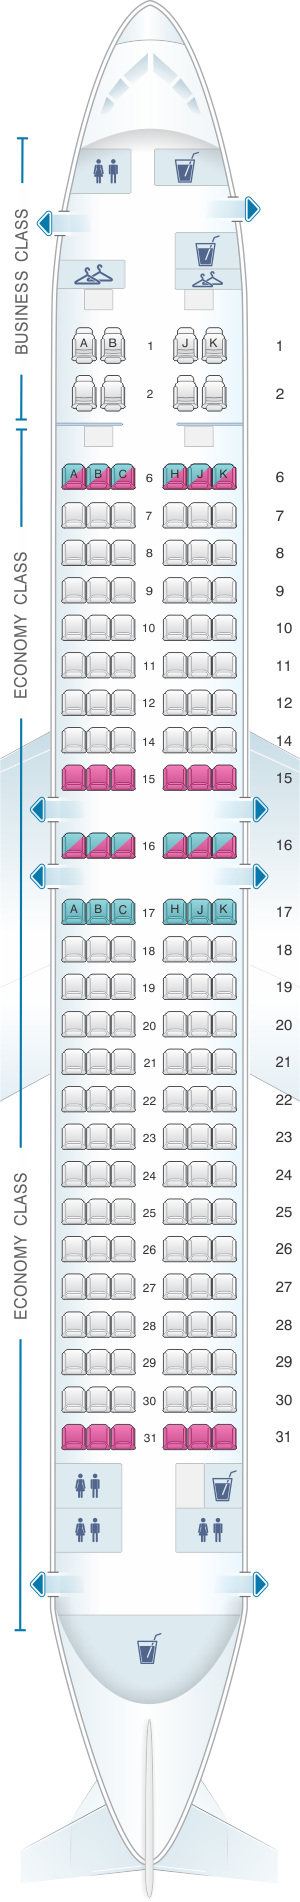 Seat map for China Airlines Boeing B737 800 Config.1